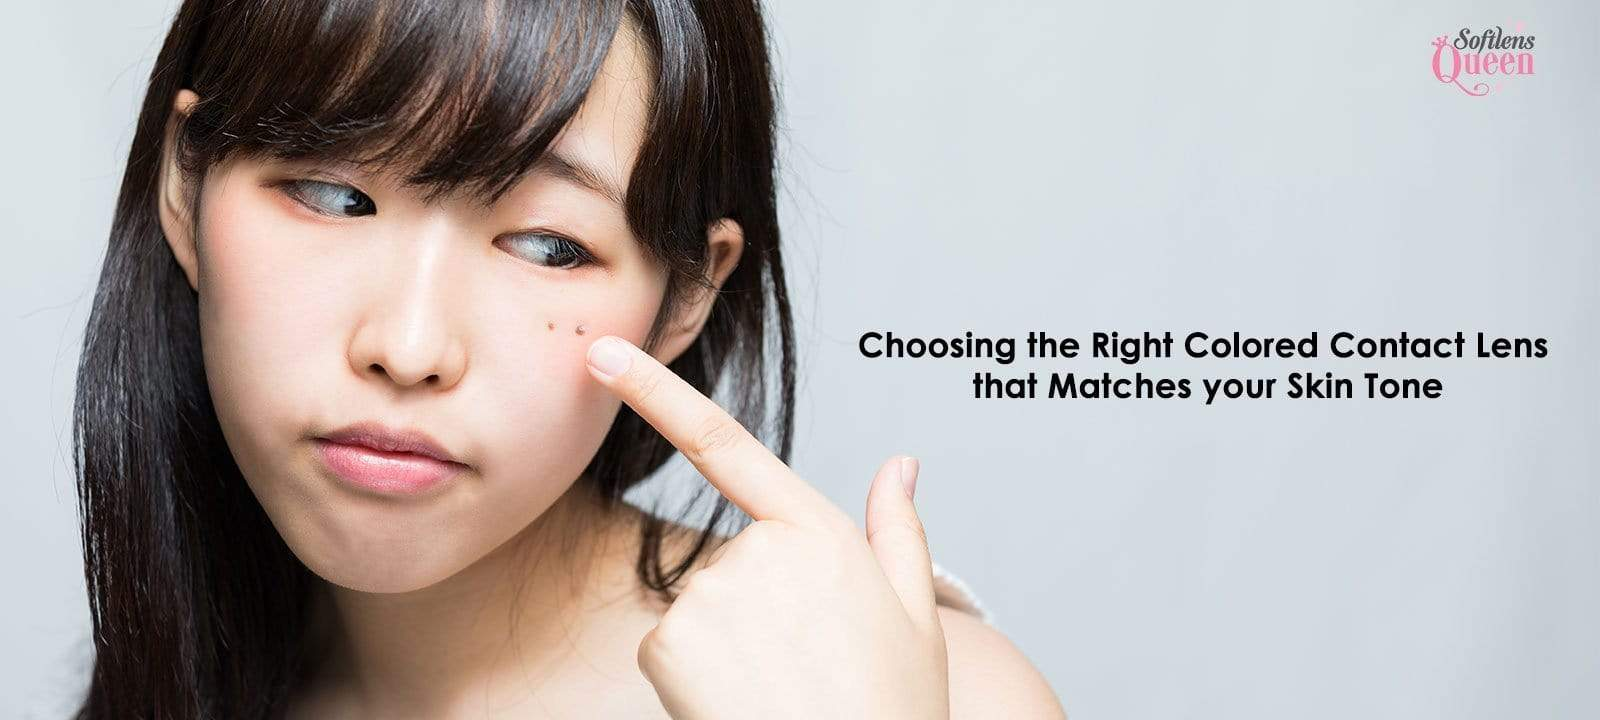 How to Choose the Best Colored Contact Lenses for Your Eyes